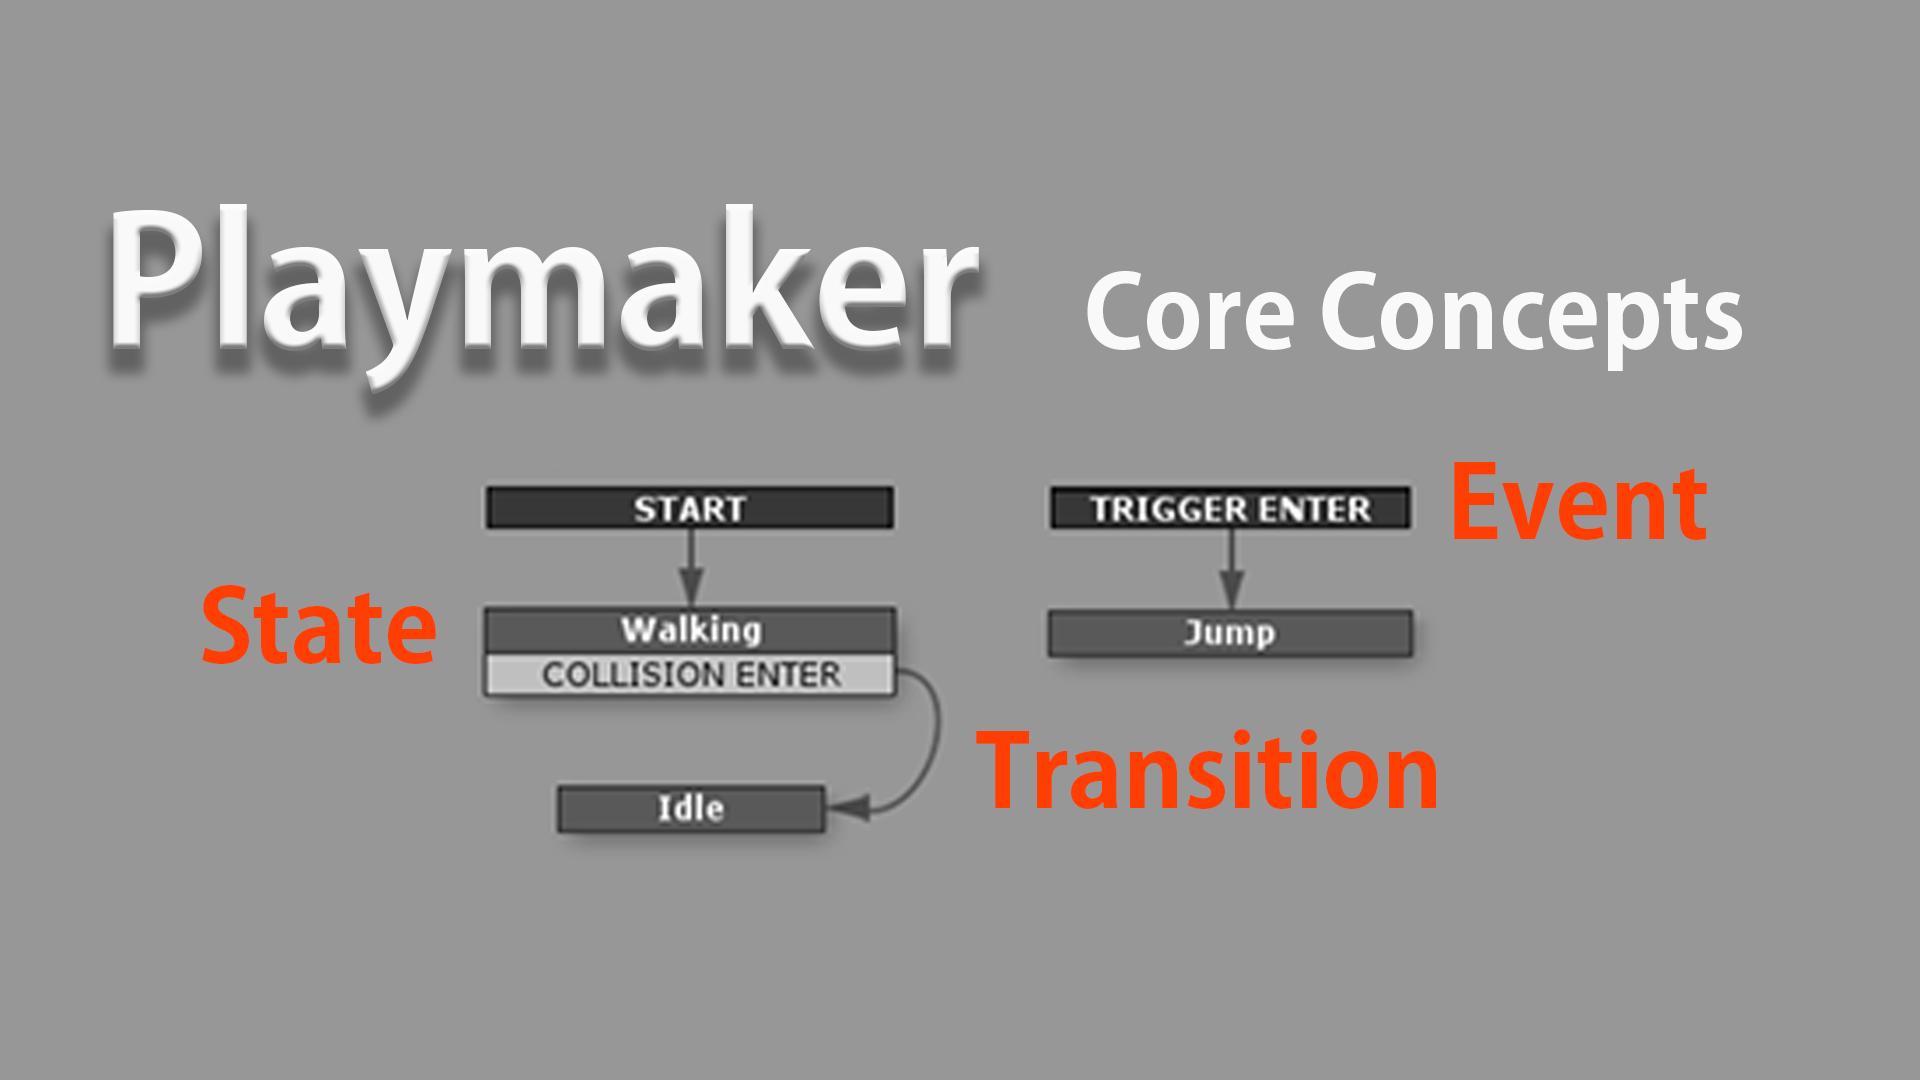 Playmaker Core Concepts